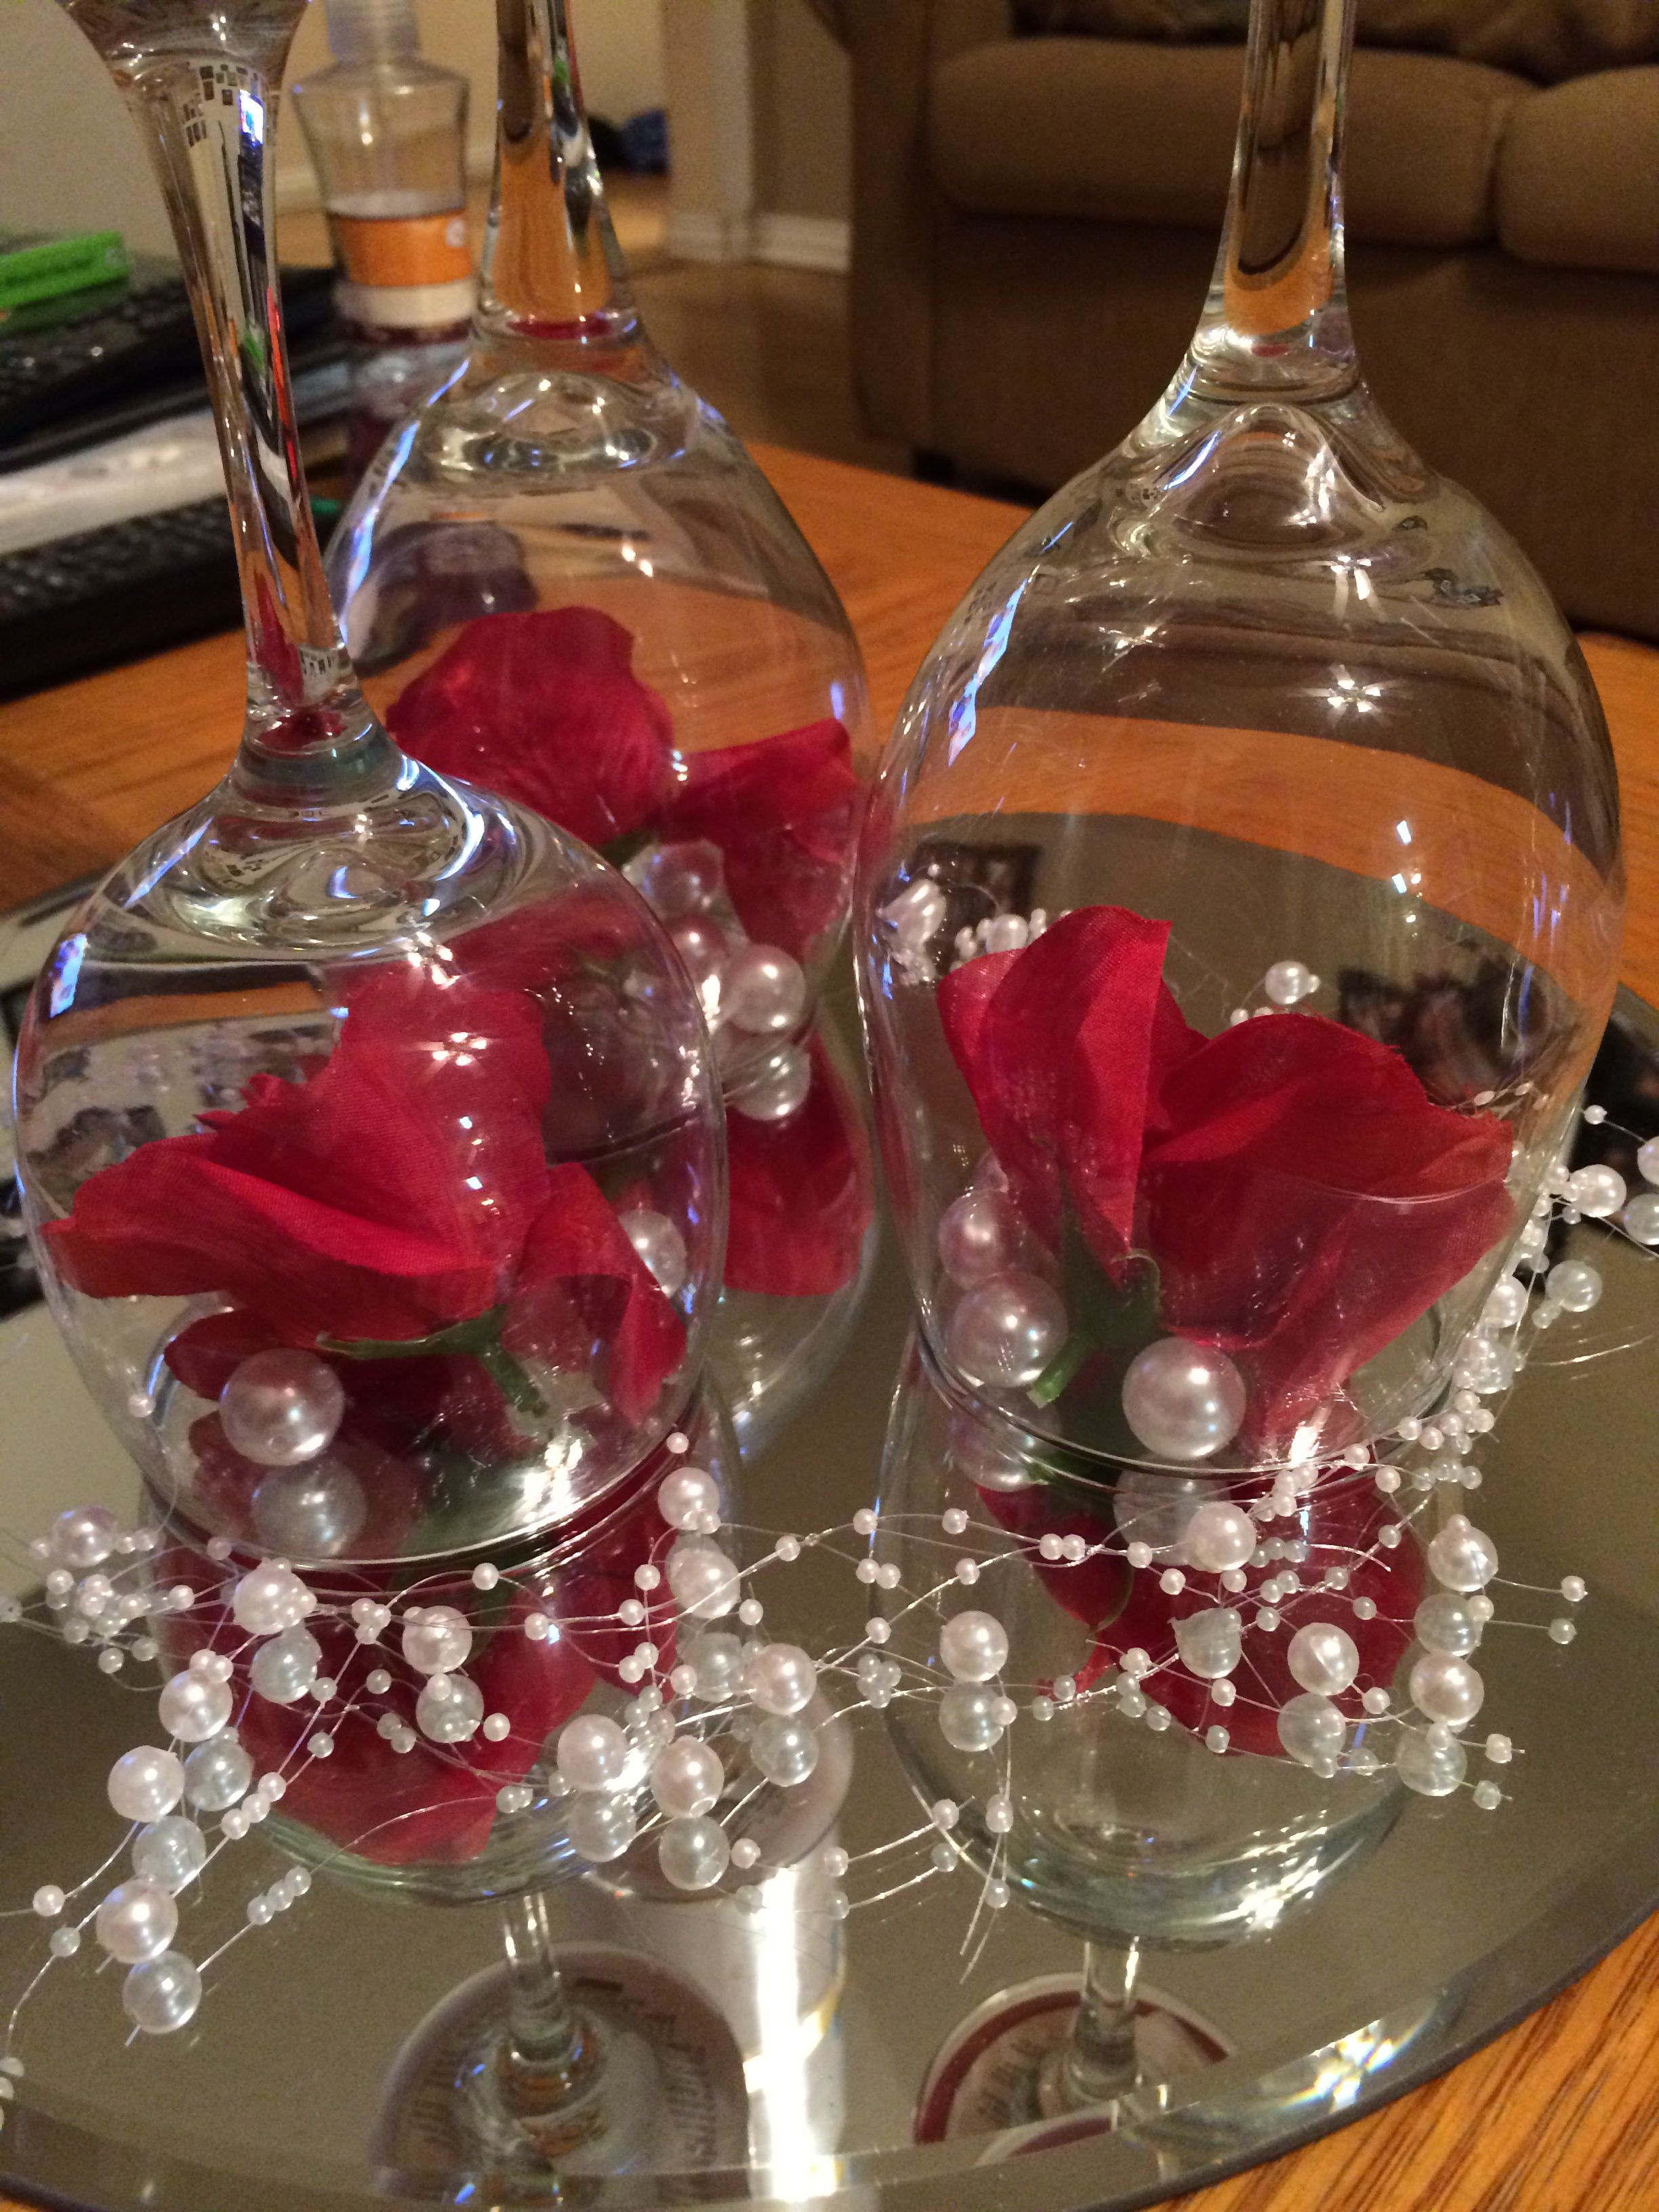 Pearl Themed Wedding Centerpiece Upside Down Wine Glasses Candles Flowers Wine Glass Centerpieces Glass Wedding Centerpieces Pearl Centerpiece